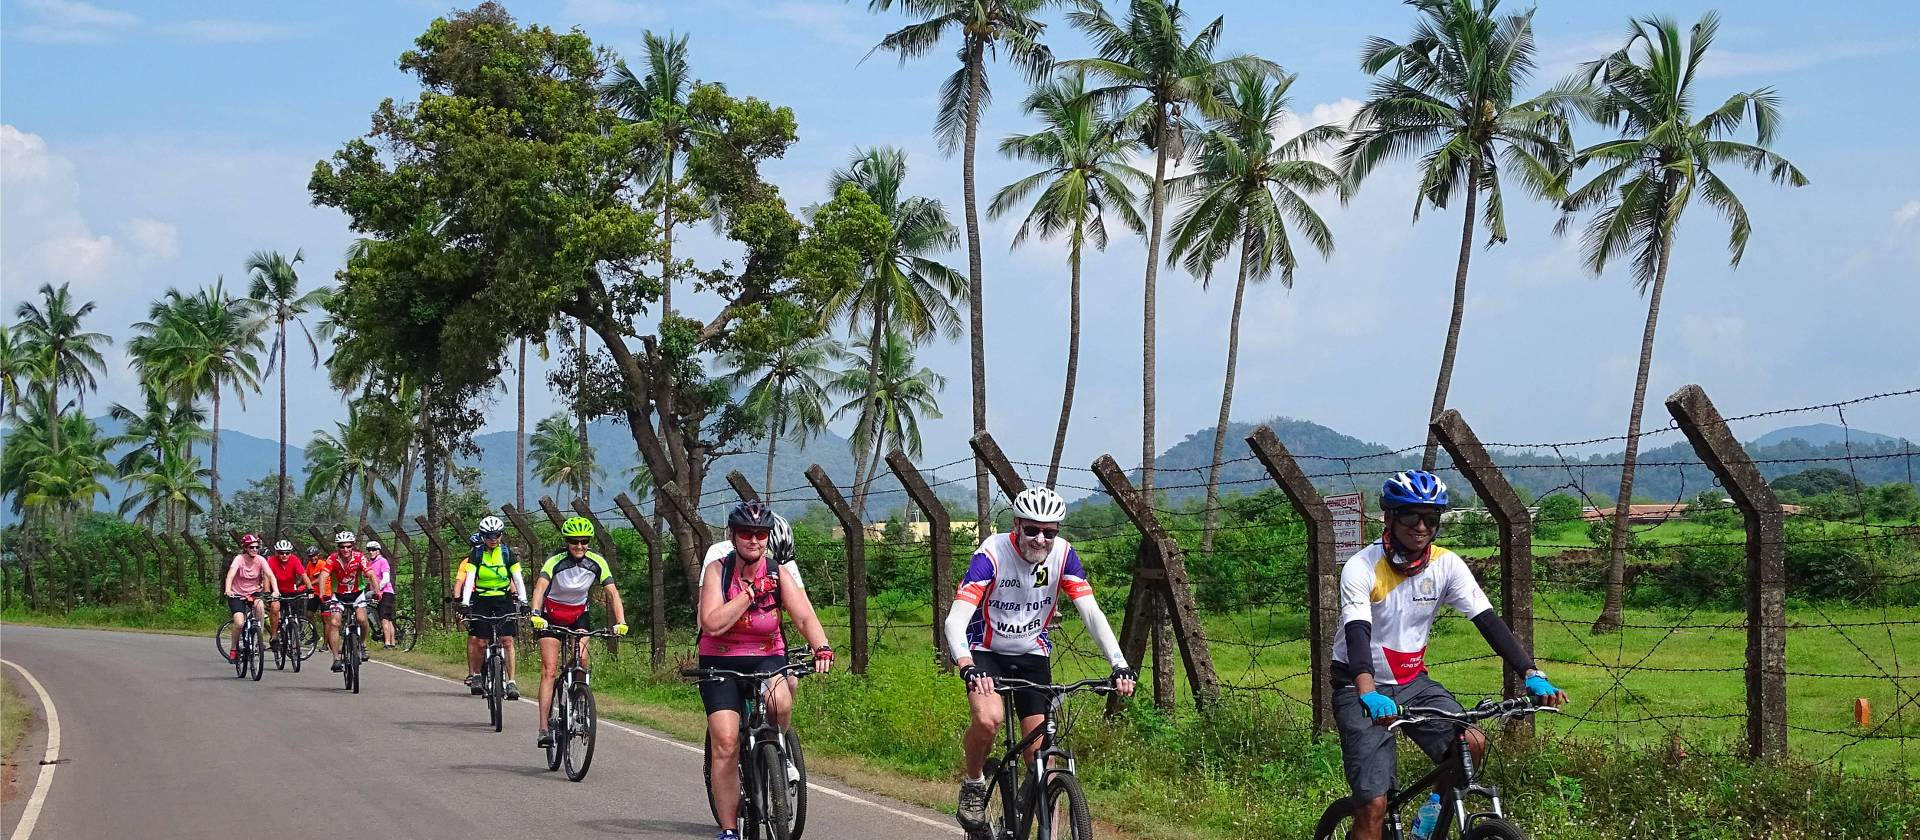 Best Things to do In Goa During the Monsoon-Experience Rural Goa on A Bicycle Tour